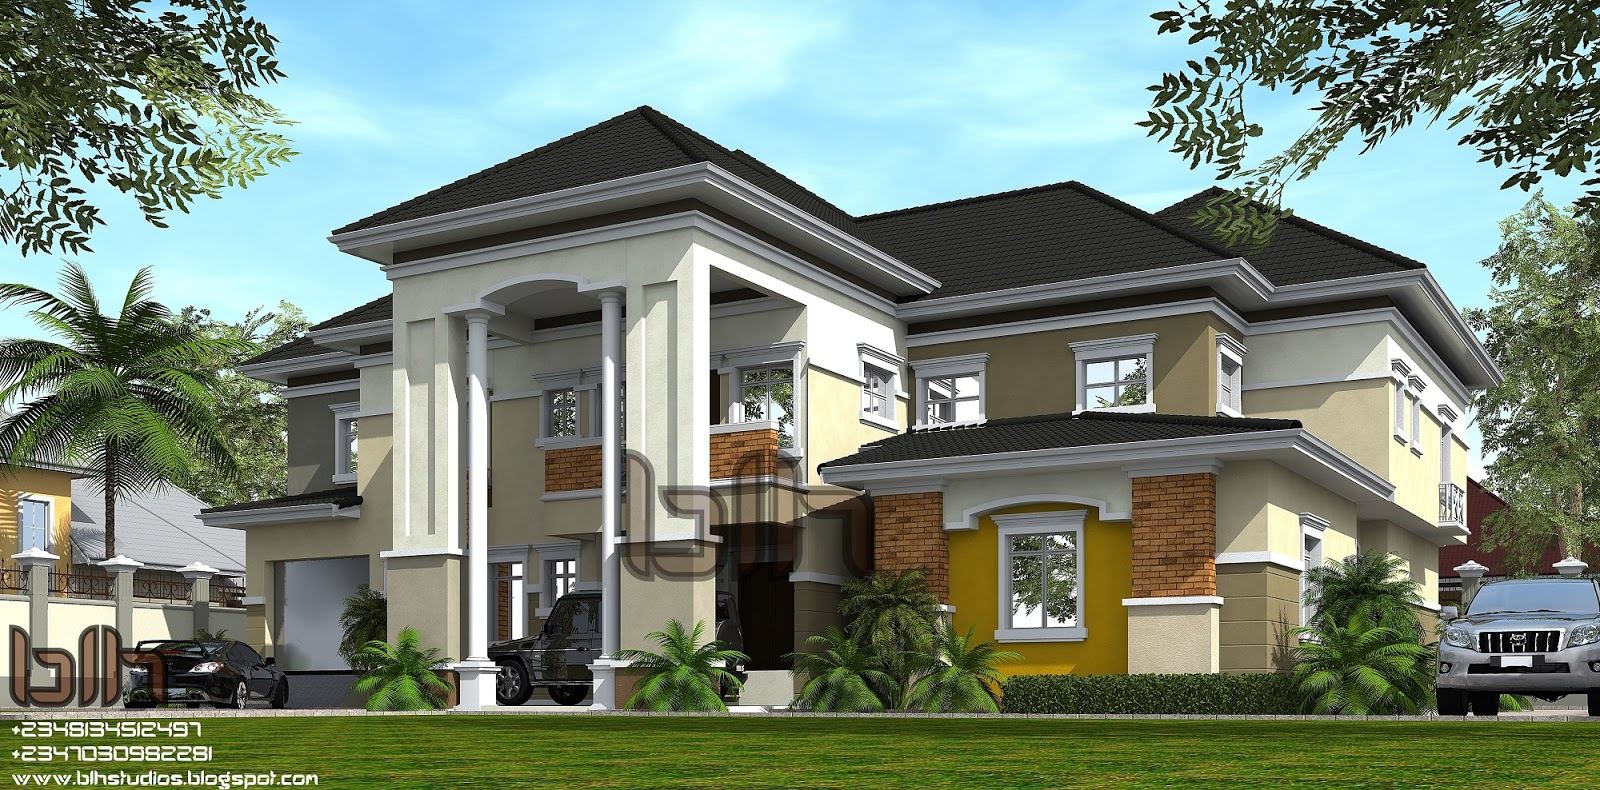 Architectural designs by blacklakehouse 6 bedroom duplex for Architectural designs for 5 bedroom duplex